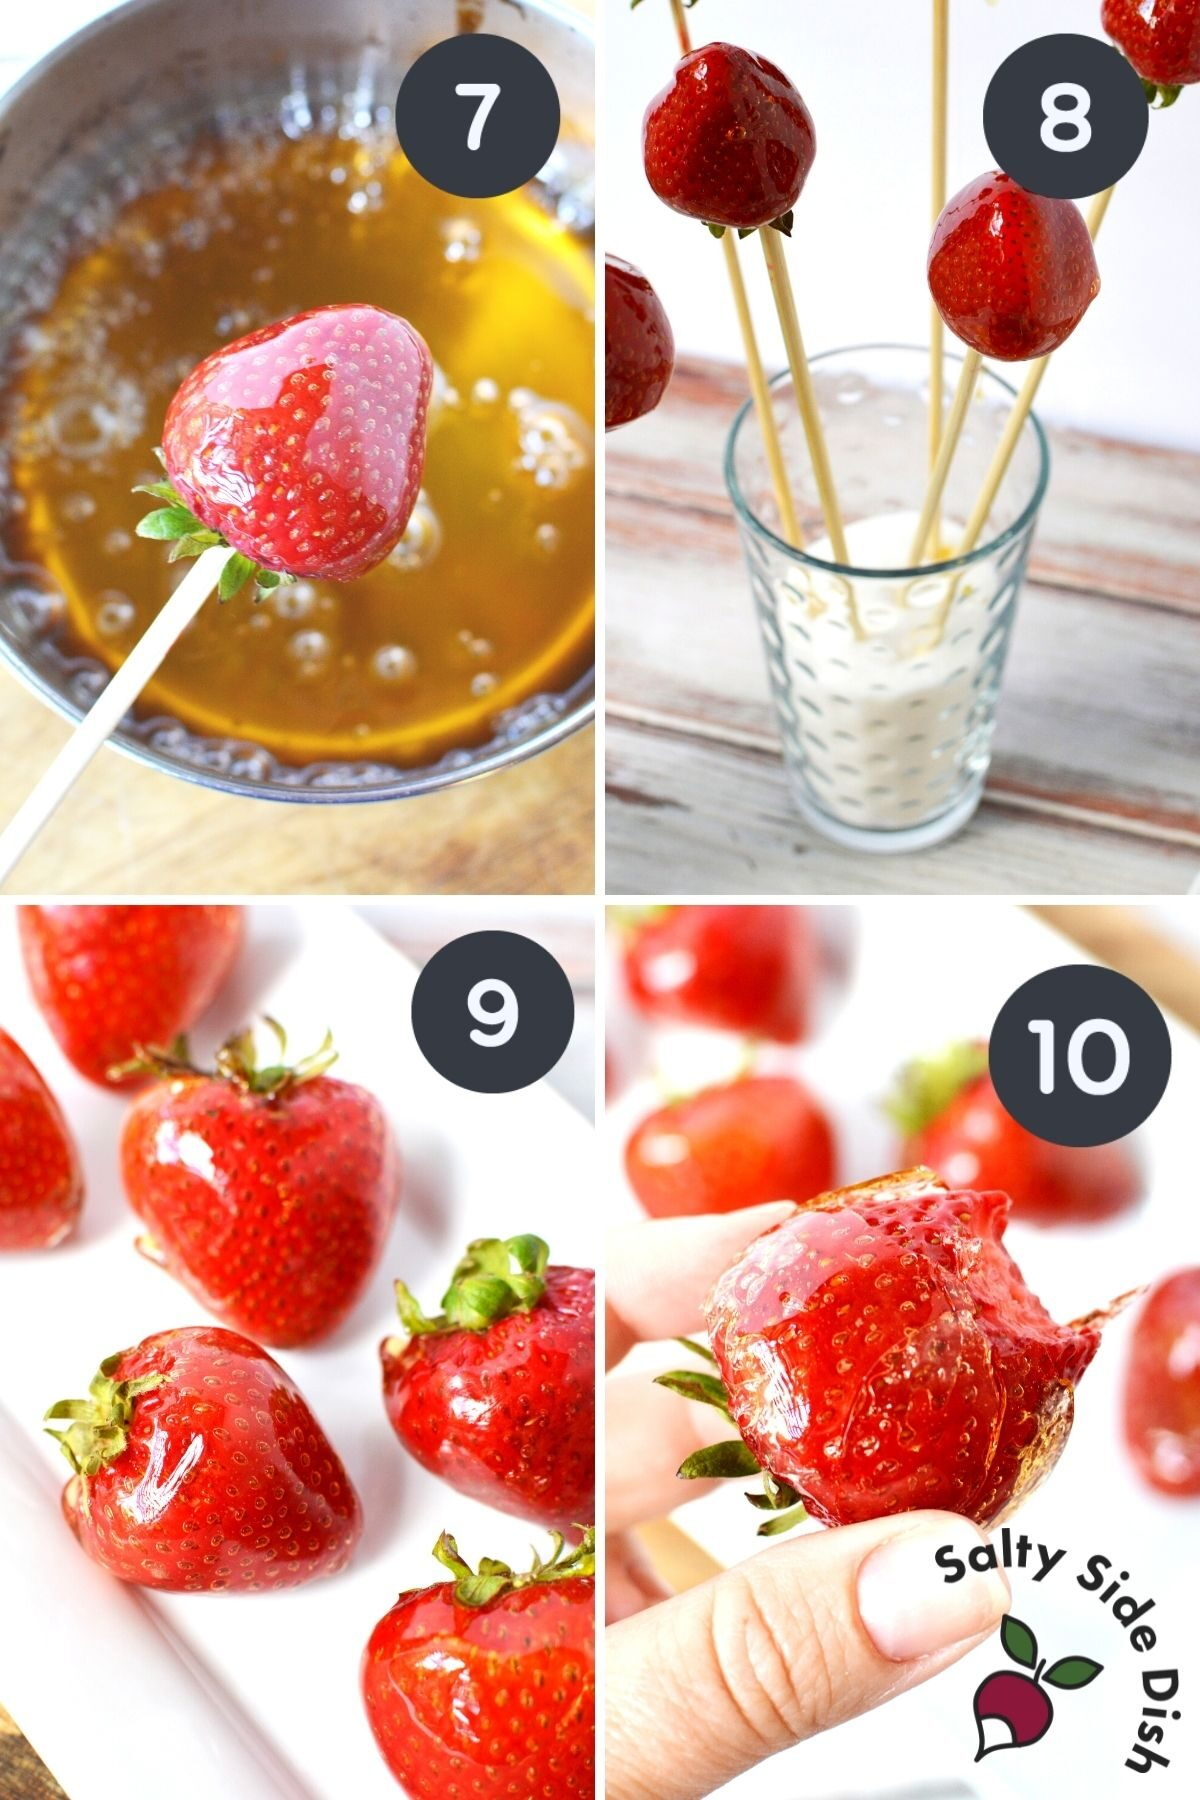 dipping strawberries into candied sugar, a collage of 4 images for tanghulu strawberries.